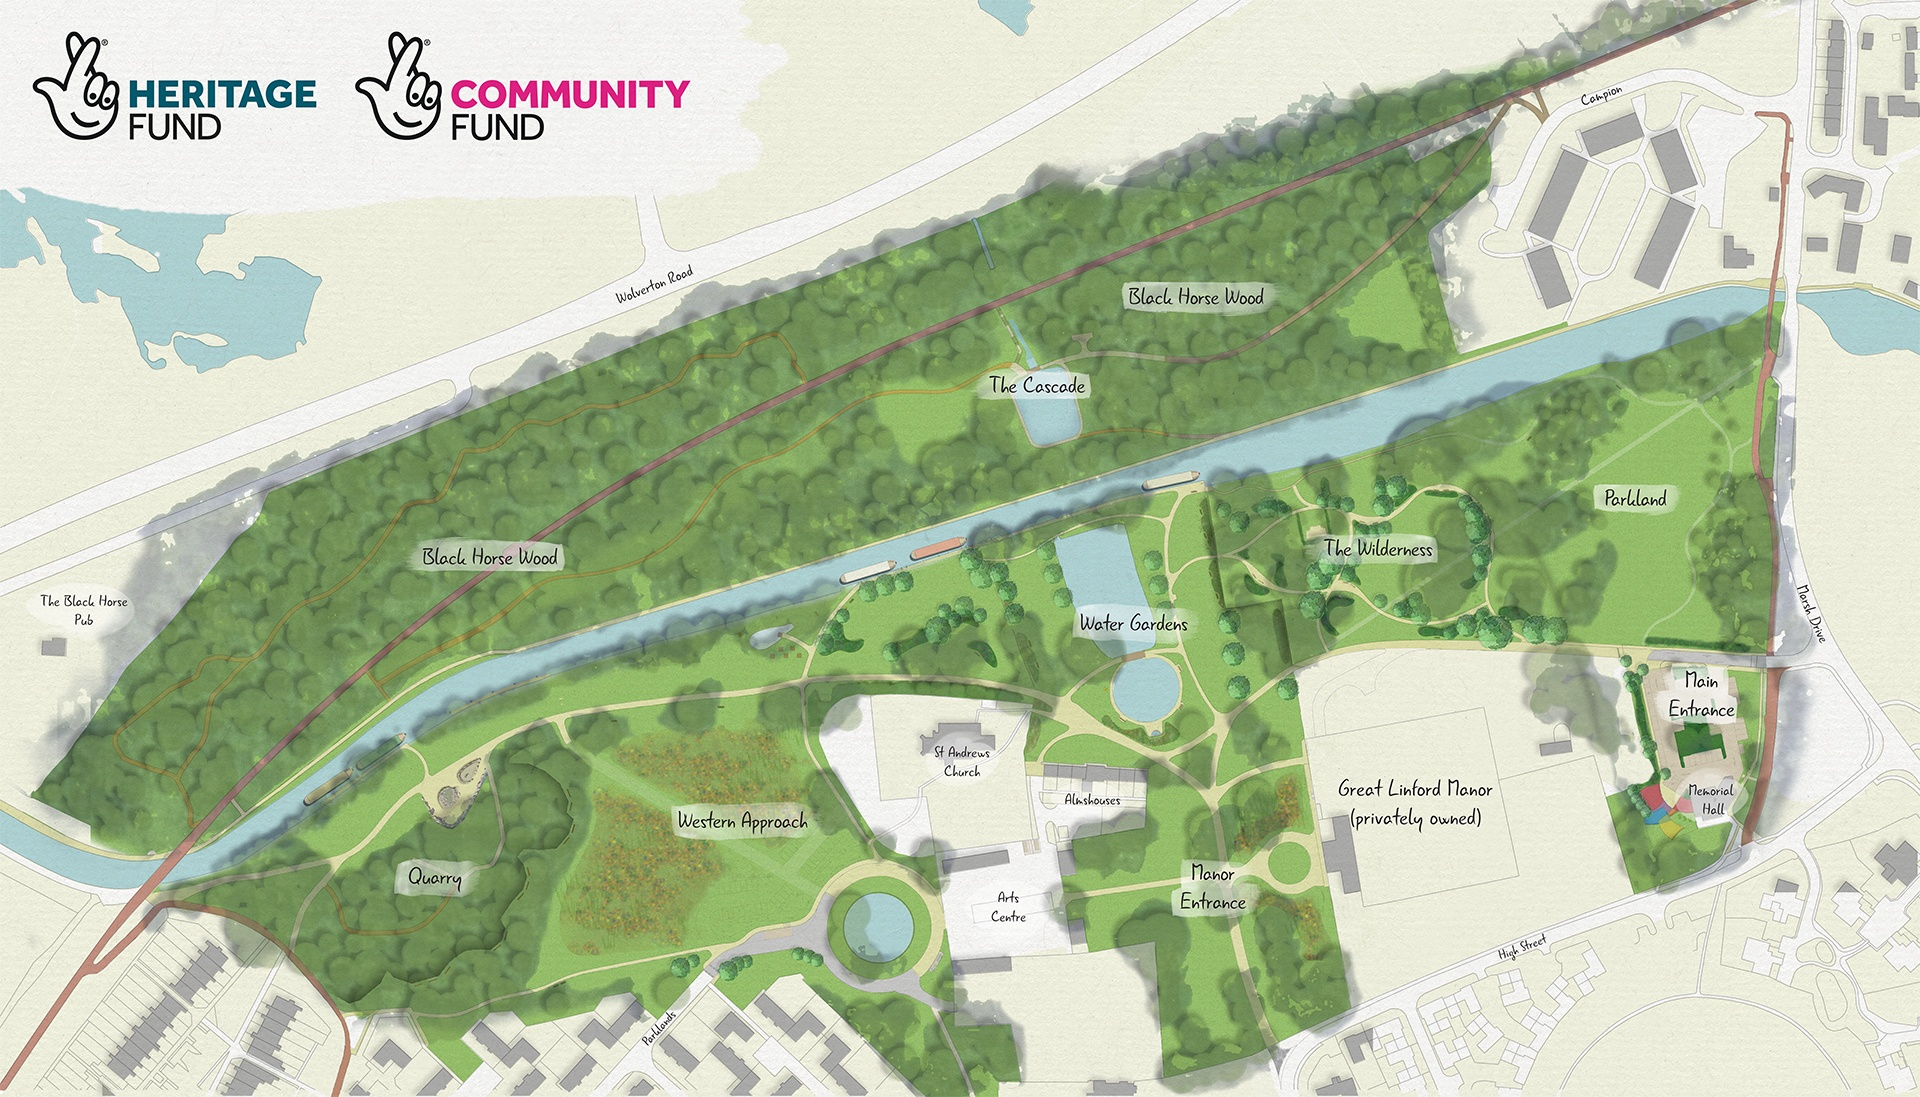 The Parks Trust begin to revive Great Linford Manor Park